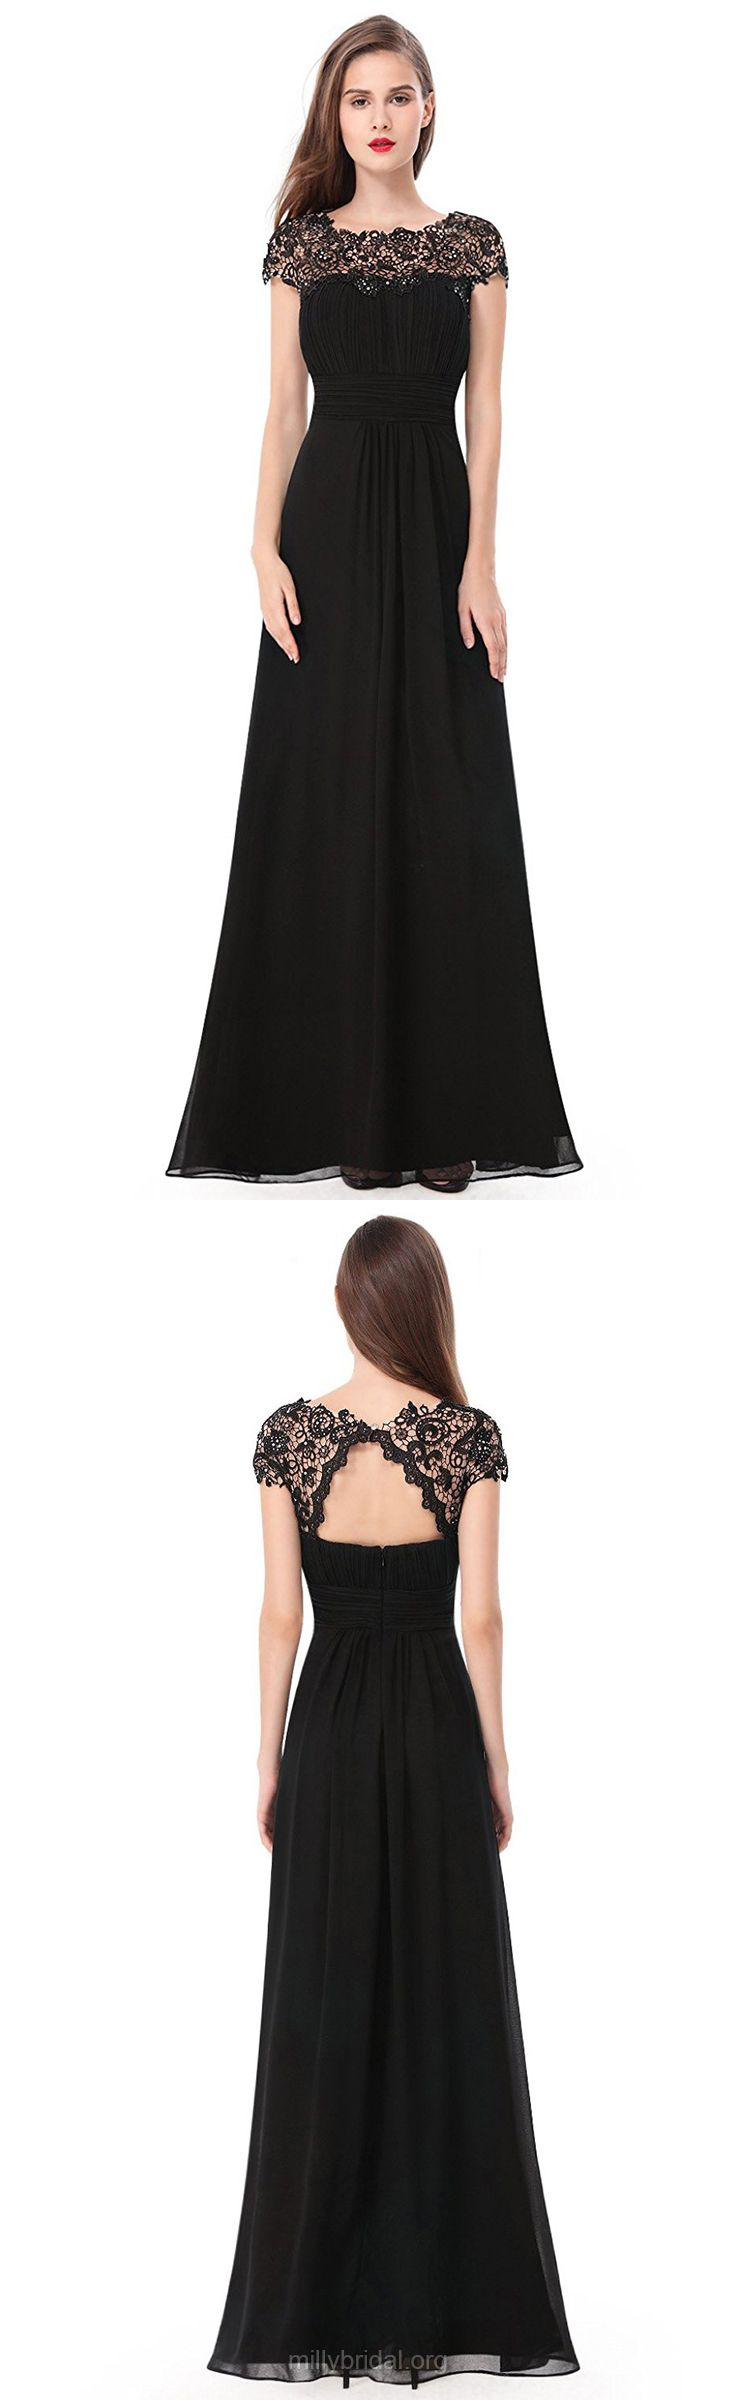 Black prom dresses long prom dresses lace prom dresses a